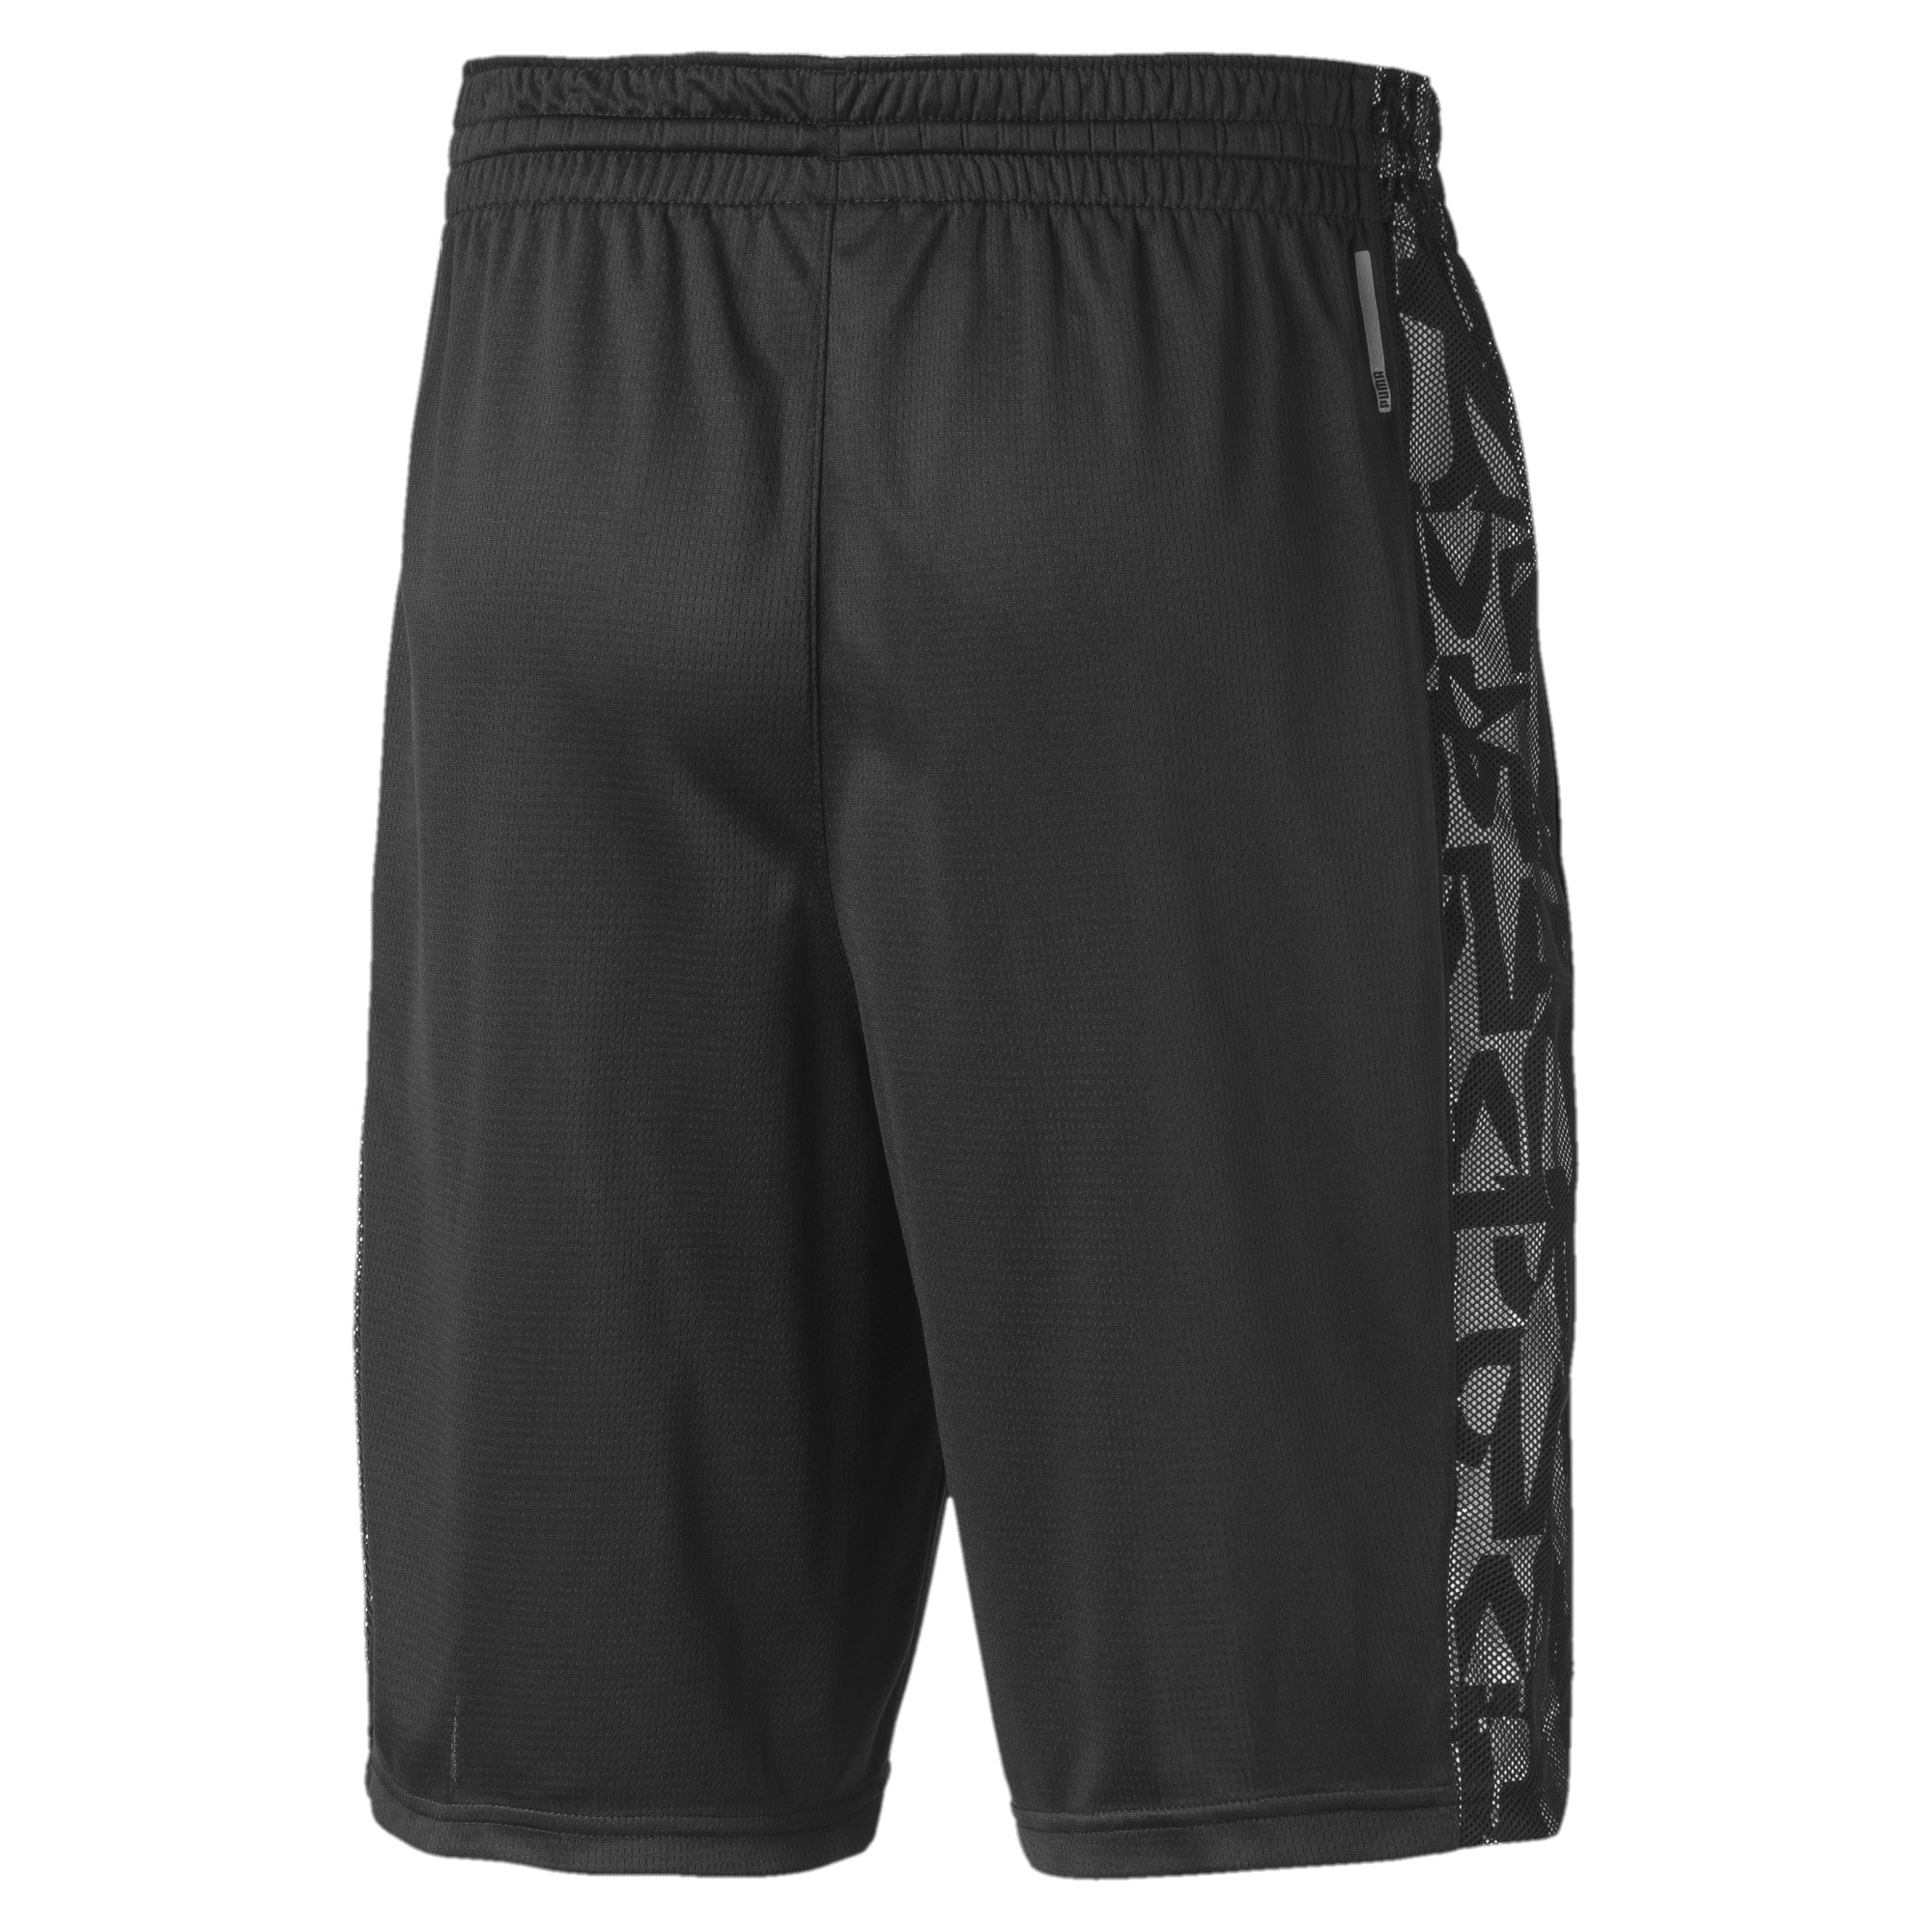 Thumbnail 5 of Power Vent Men's Training Shorts, Puma Black-Puma White, medium-IND